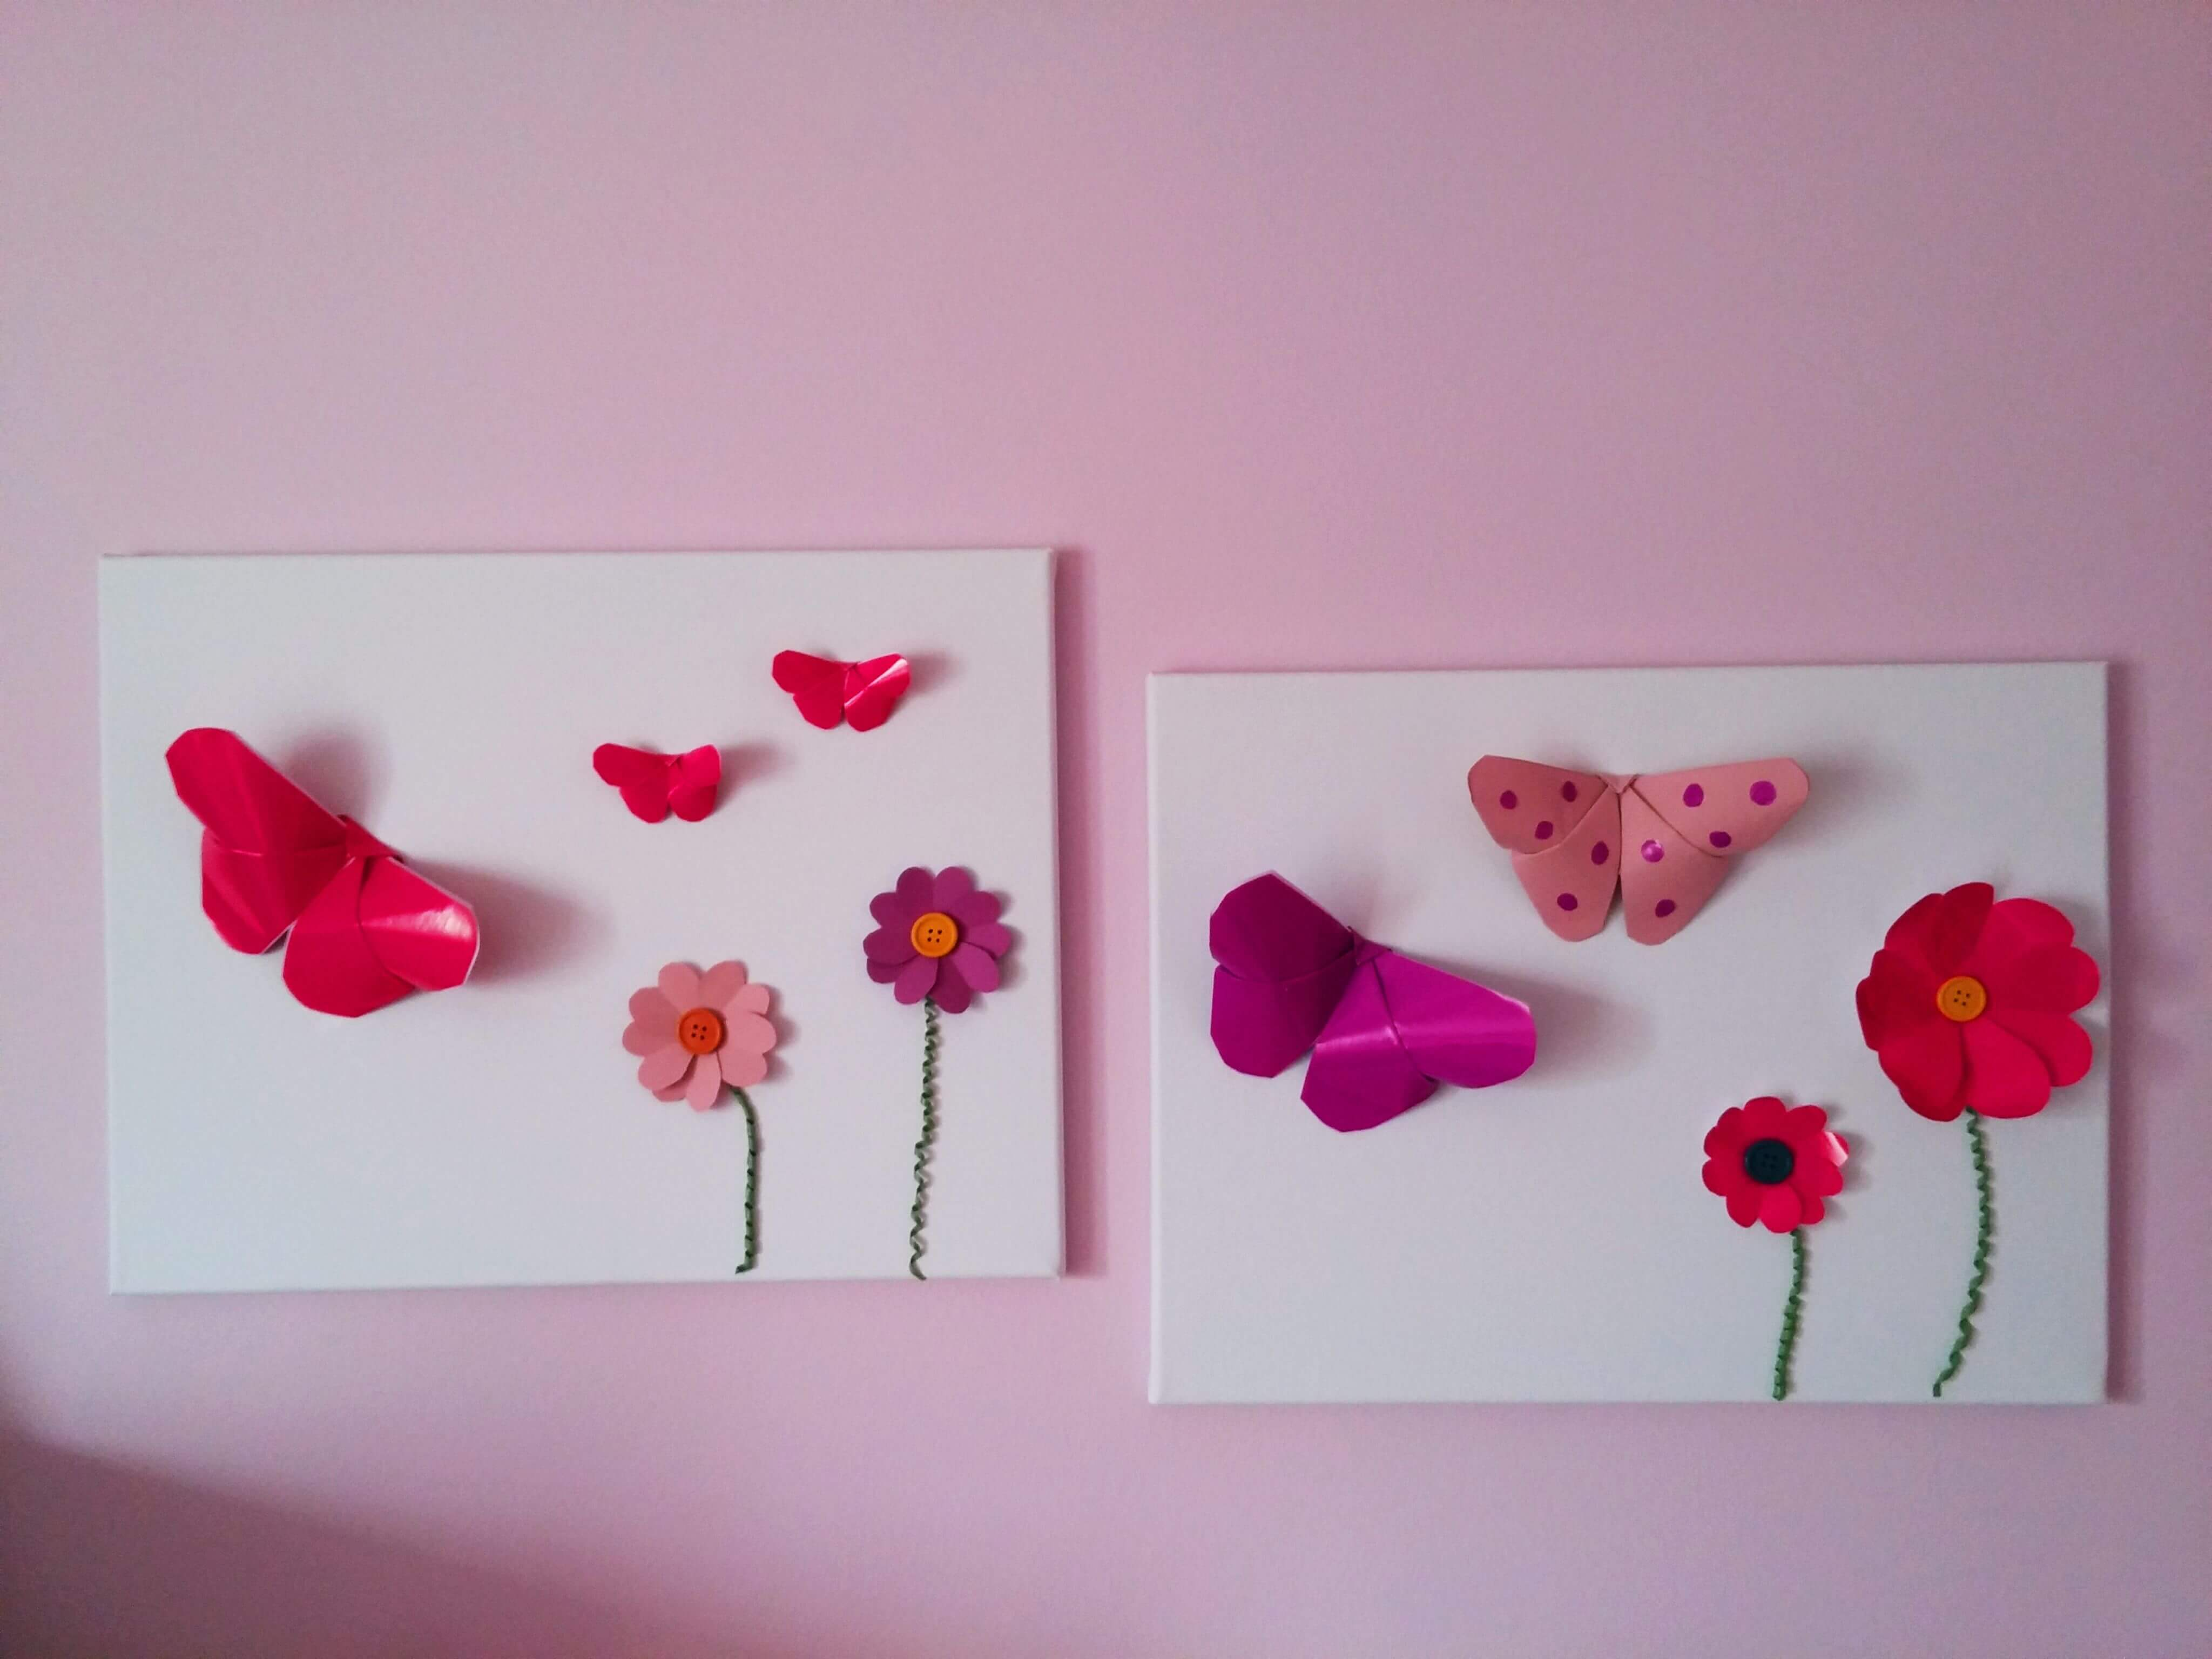 DIY Wall Art for girls bedrooms - DIY Κάδρα για κοριτσίστικα δωμάτια